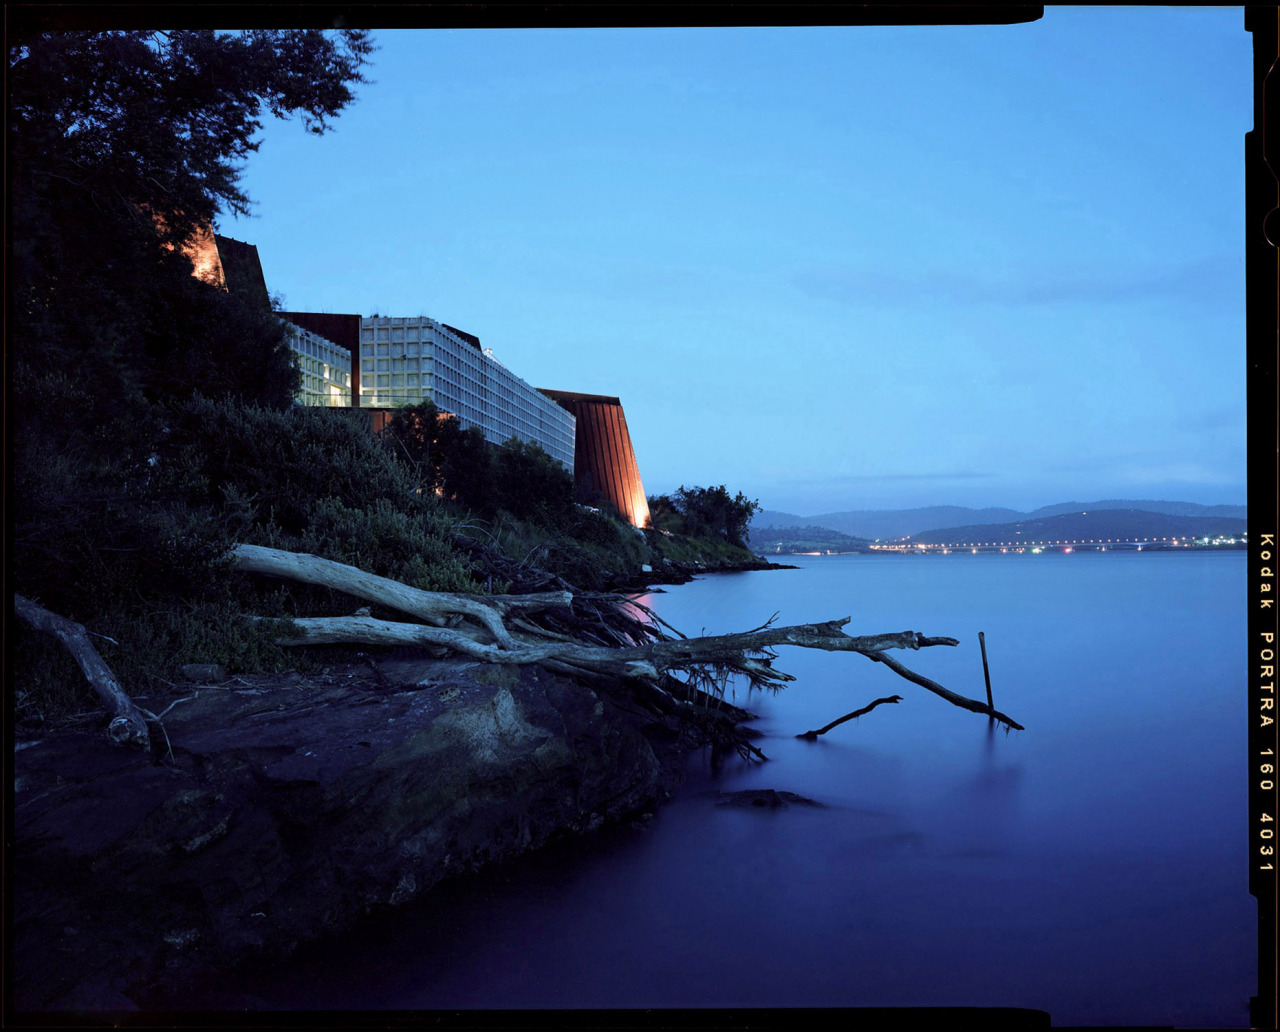 MONA Museum, Tasmania for The New Yorker (USA)